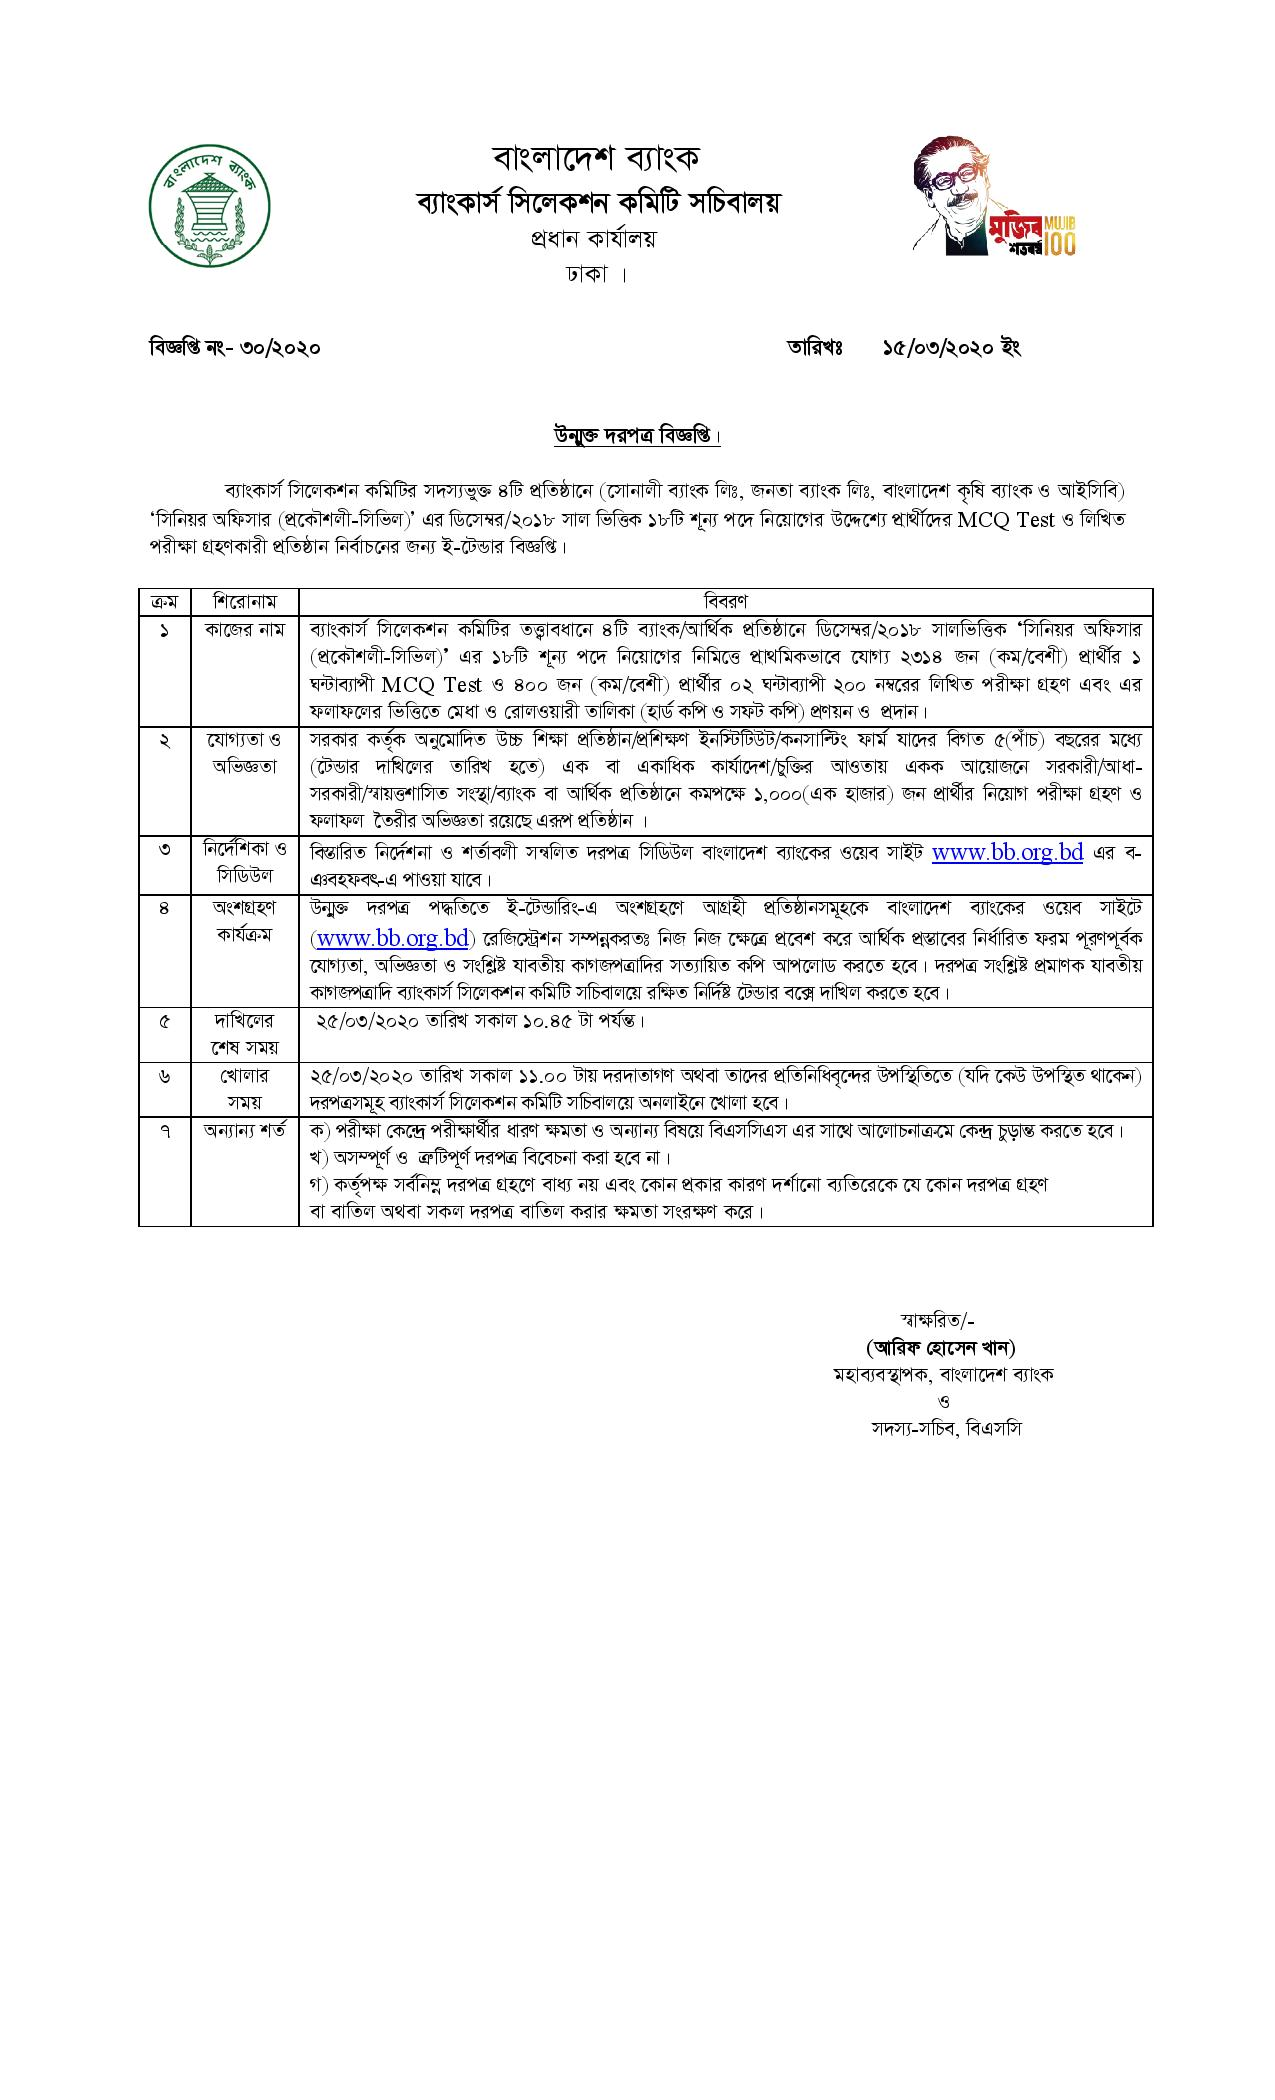 Combined 4 Bank MCQ exam E-Tender Notice 2020